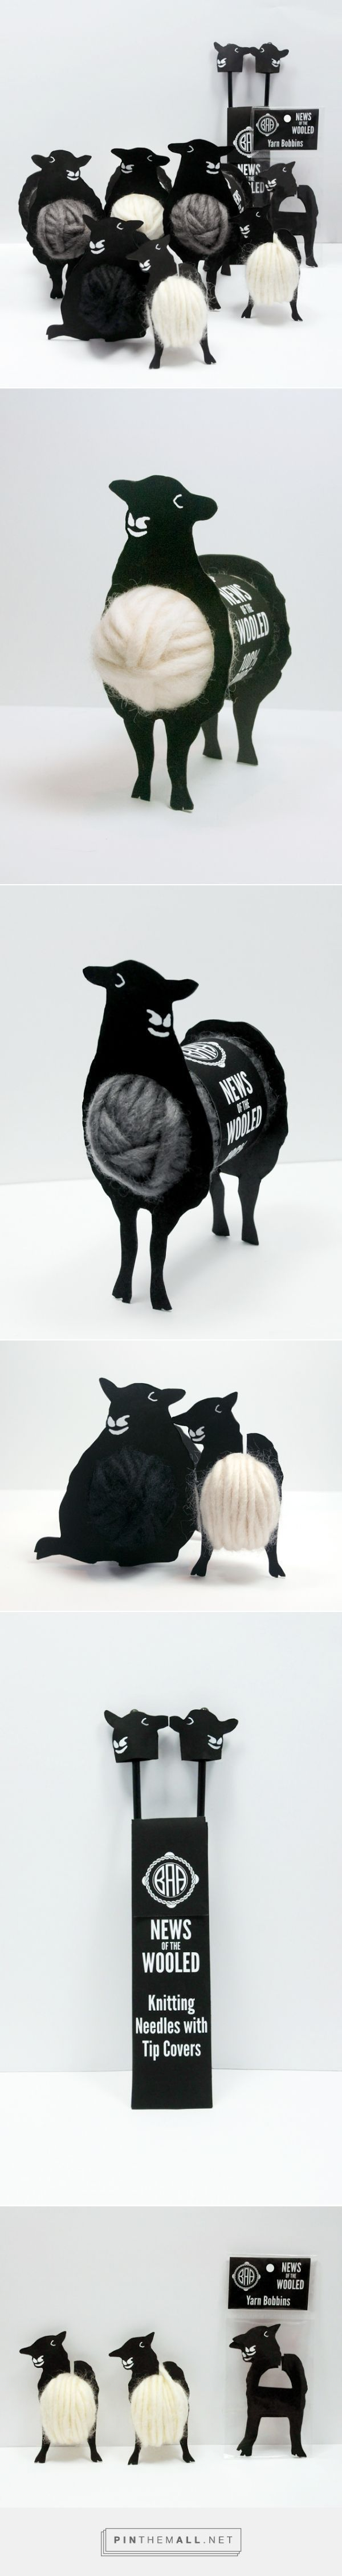 Designer: Gwyn M. Lewis Project Type: Self Promotion Location: San Francisco Bay Area, United States Packaging Contents: Wool, knitting...